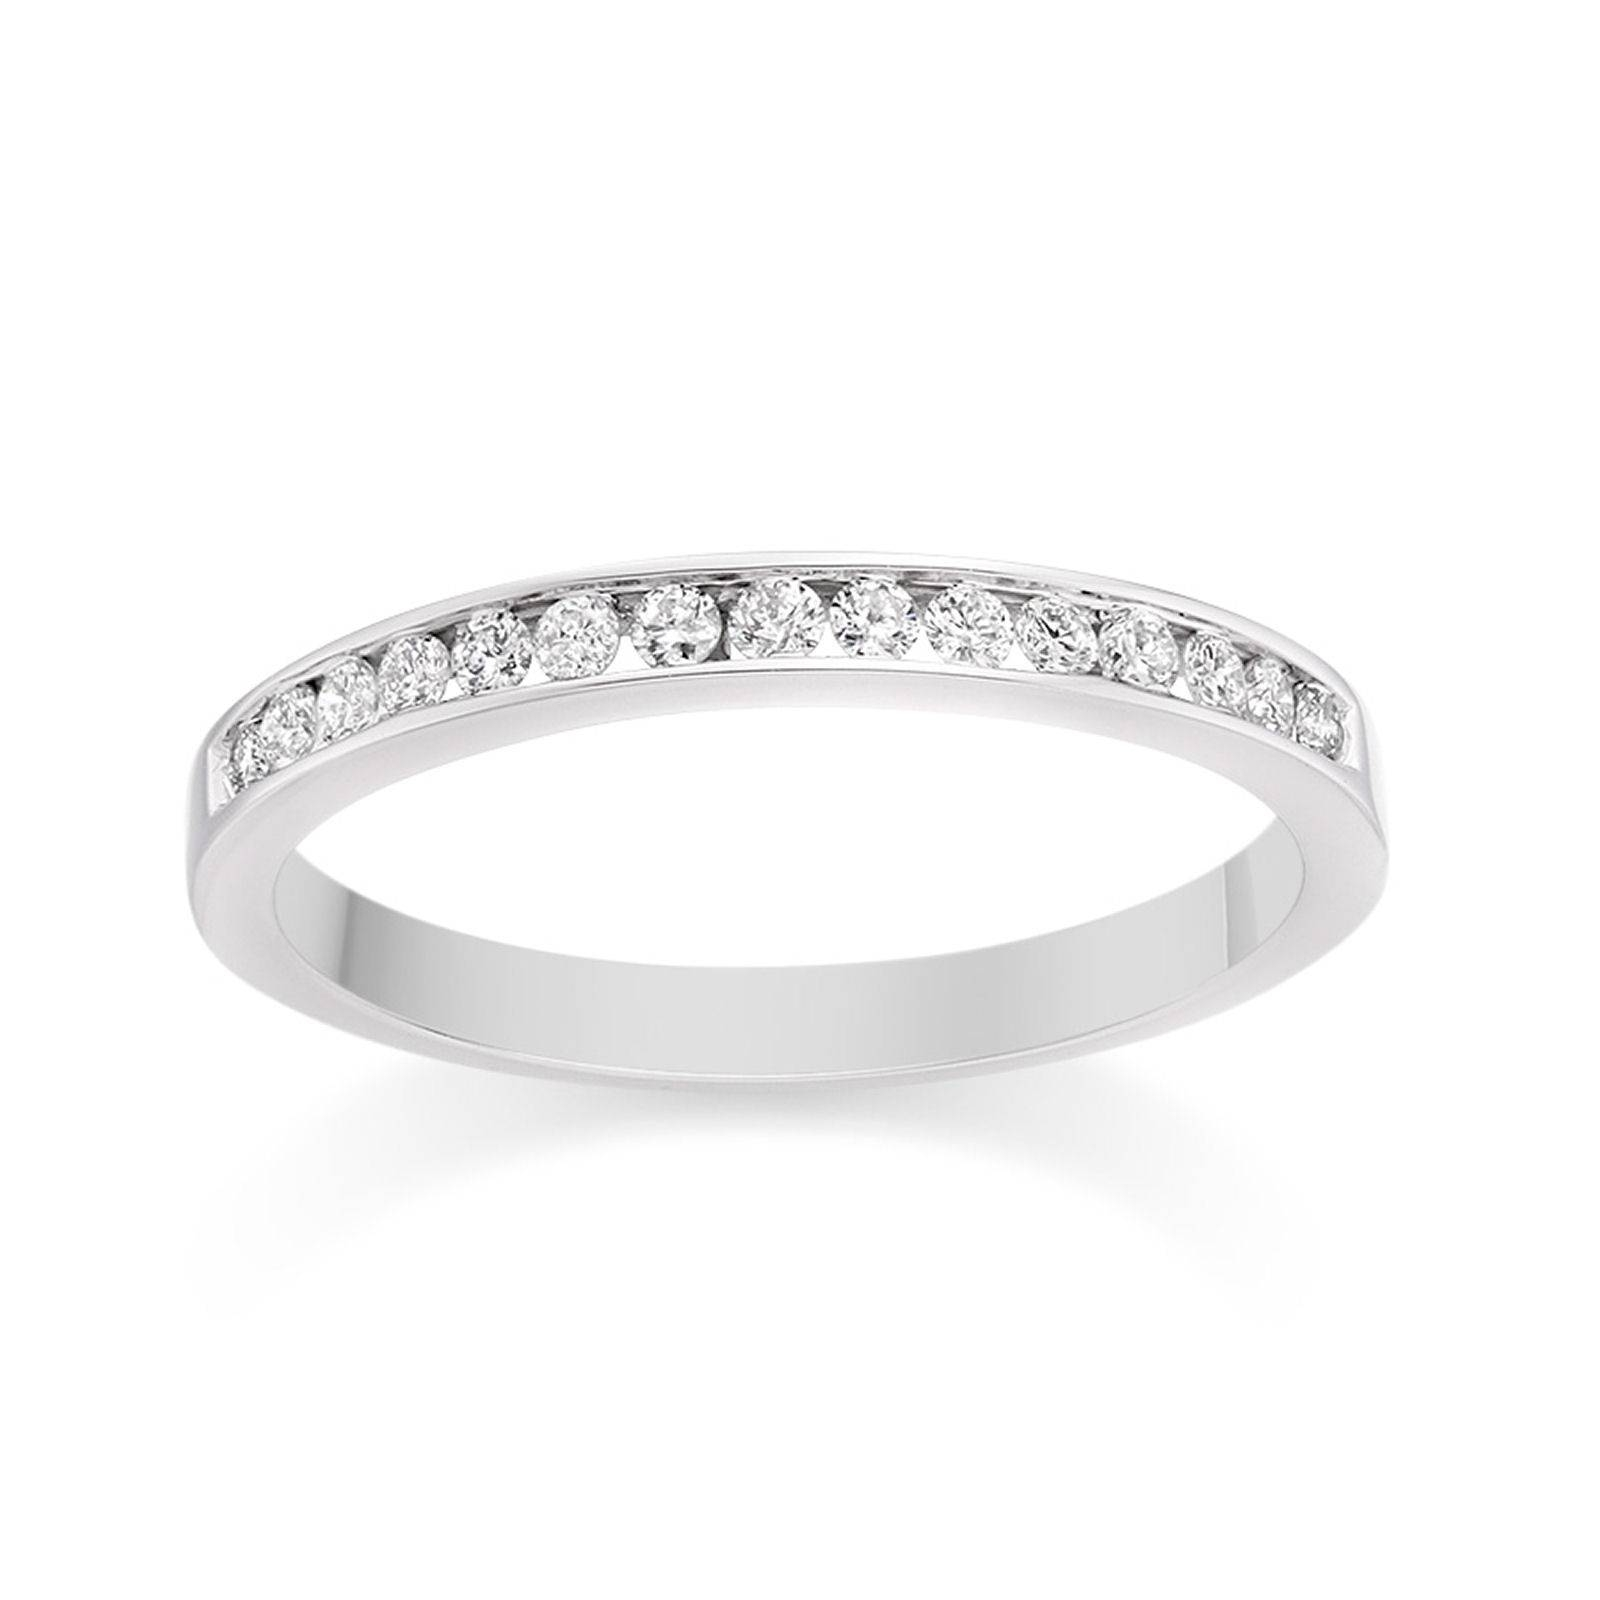 Channel Set Diamond Wedding Ring In Platinum Wedding Dress From Pertaining To Most Recently Released Platinum And Diamond Wedding Bands (View 5 of 15)